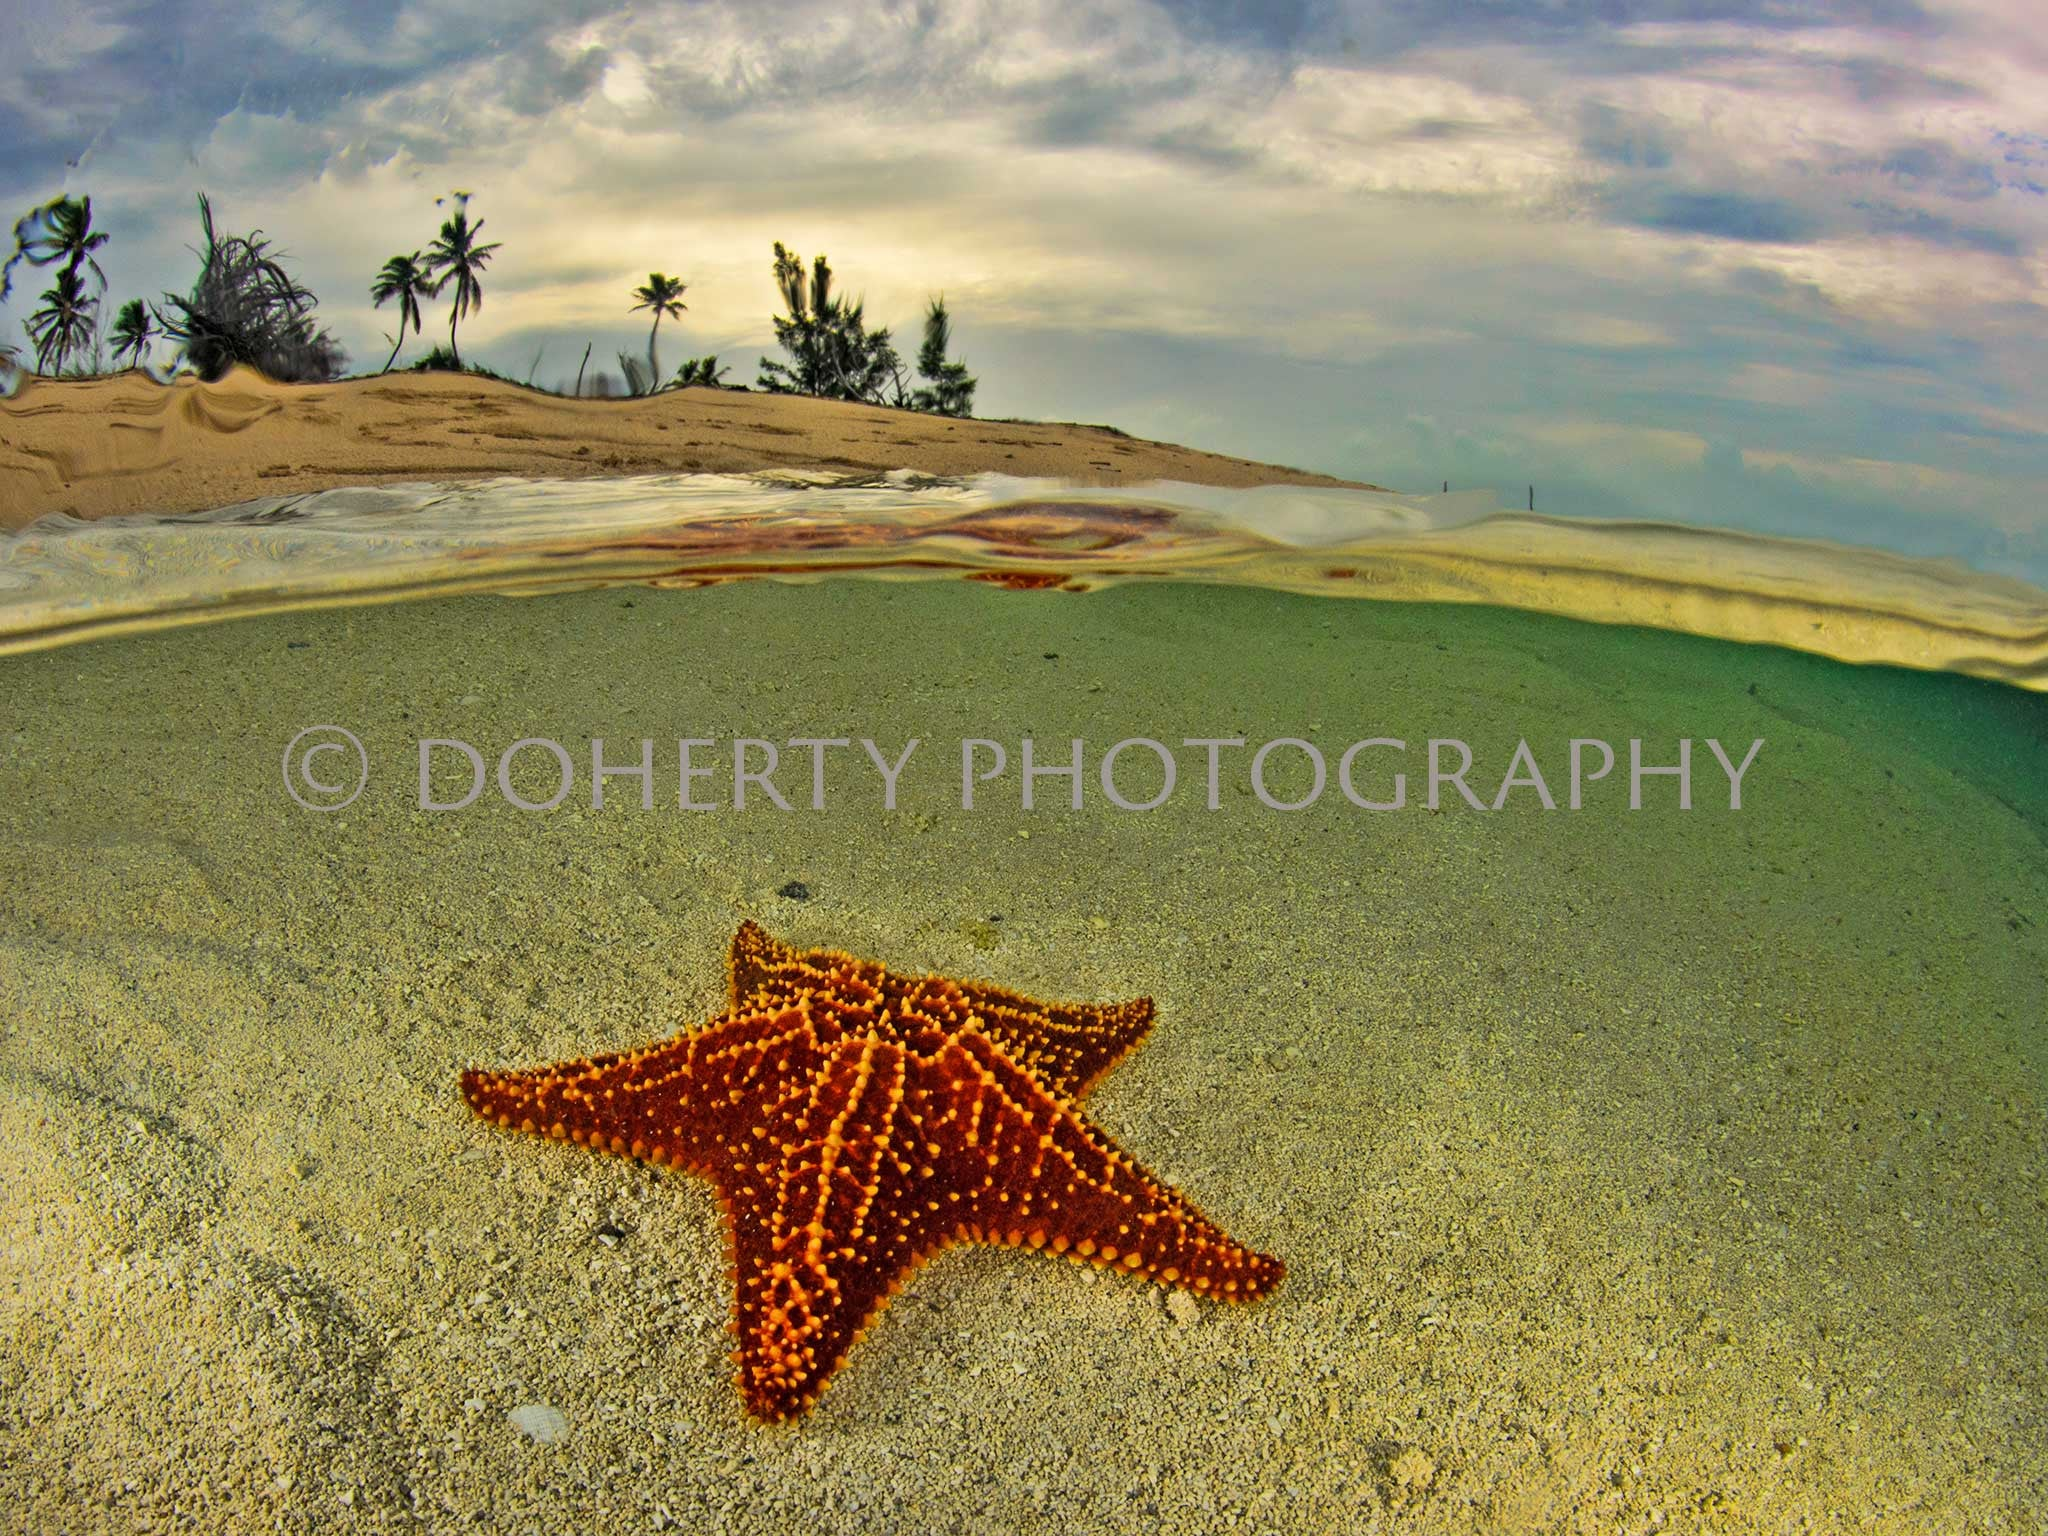 Morning Star - Doherty Photography